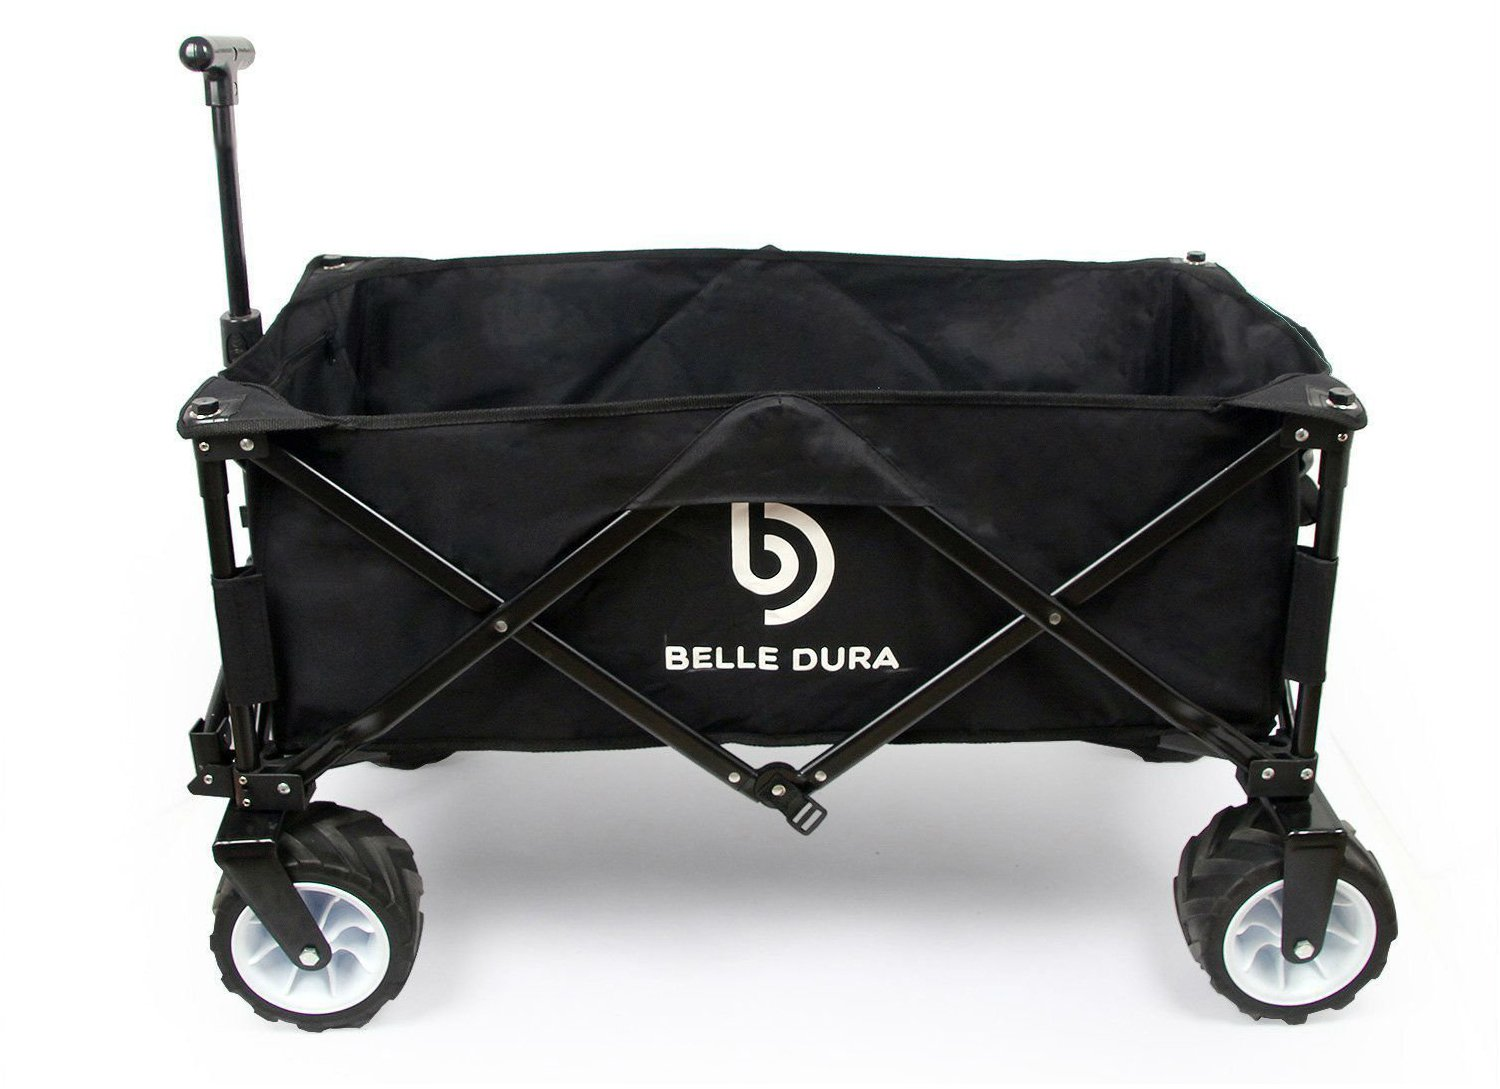 Belle Dura Folding Wagons, Collapsible Camping Utility Beach Cart Black with Beach Wheels and Sturdy Steel Frame for Outdoor Shopping Garden Wagon Cart